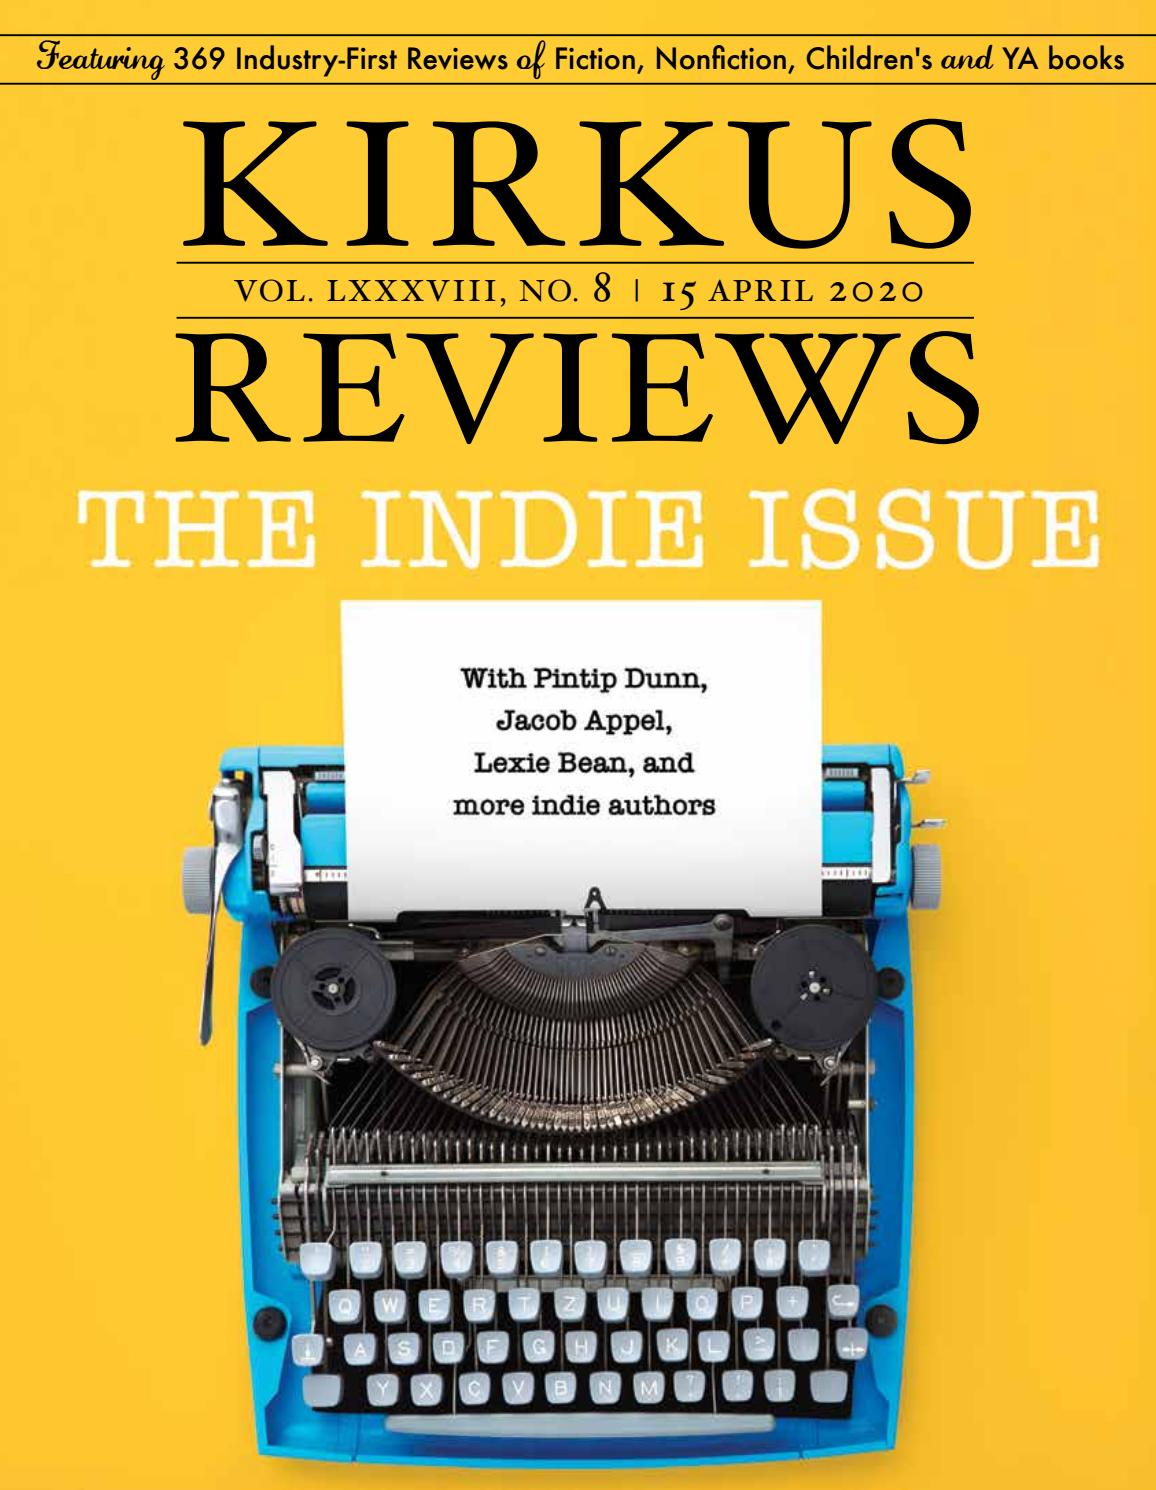 April 15 2020 Volume Lxxxviii No 8 By Kirkus Reviews Issuu